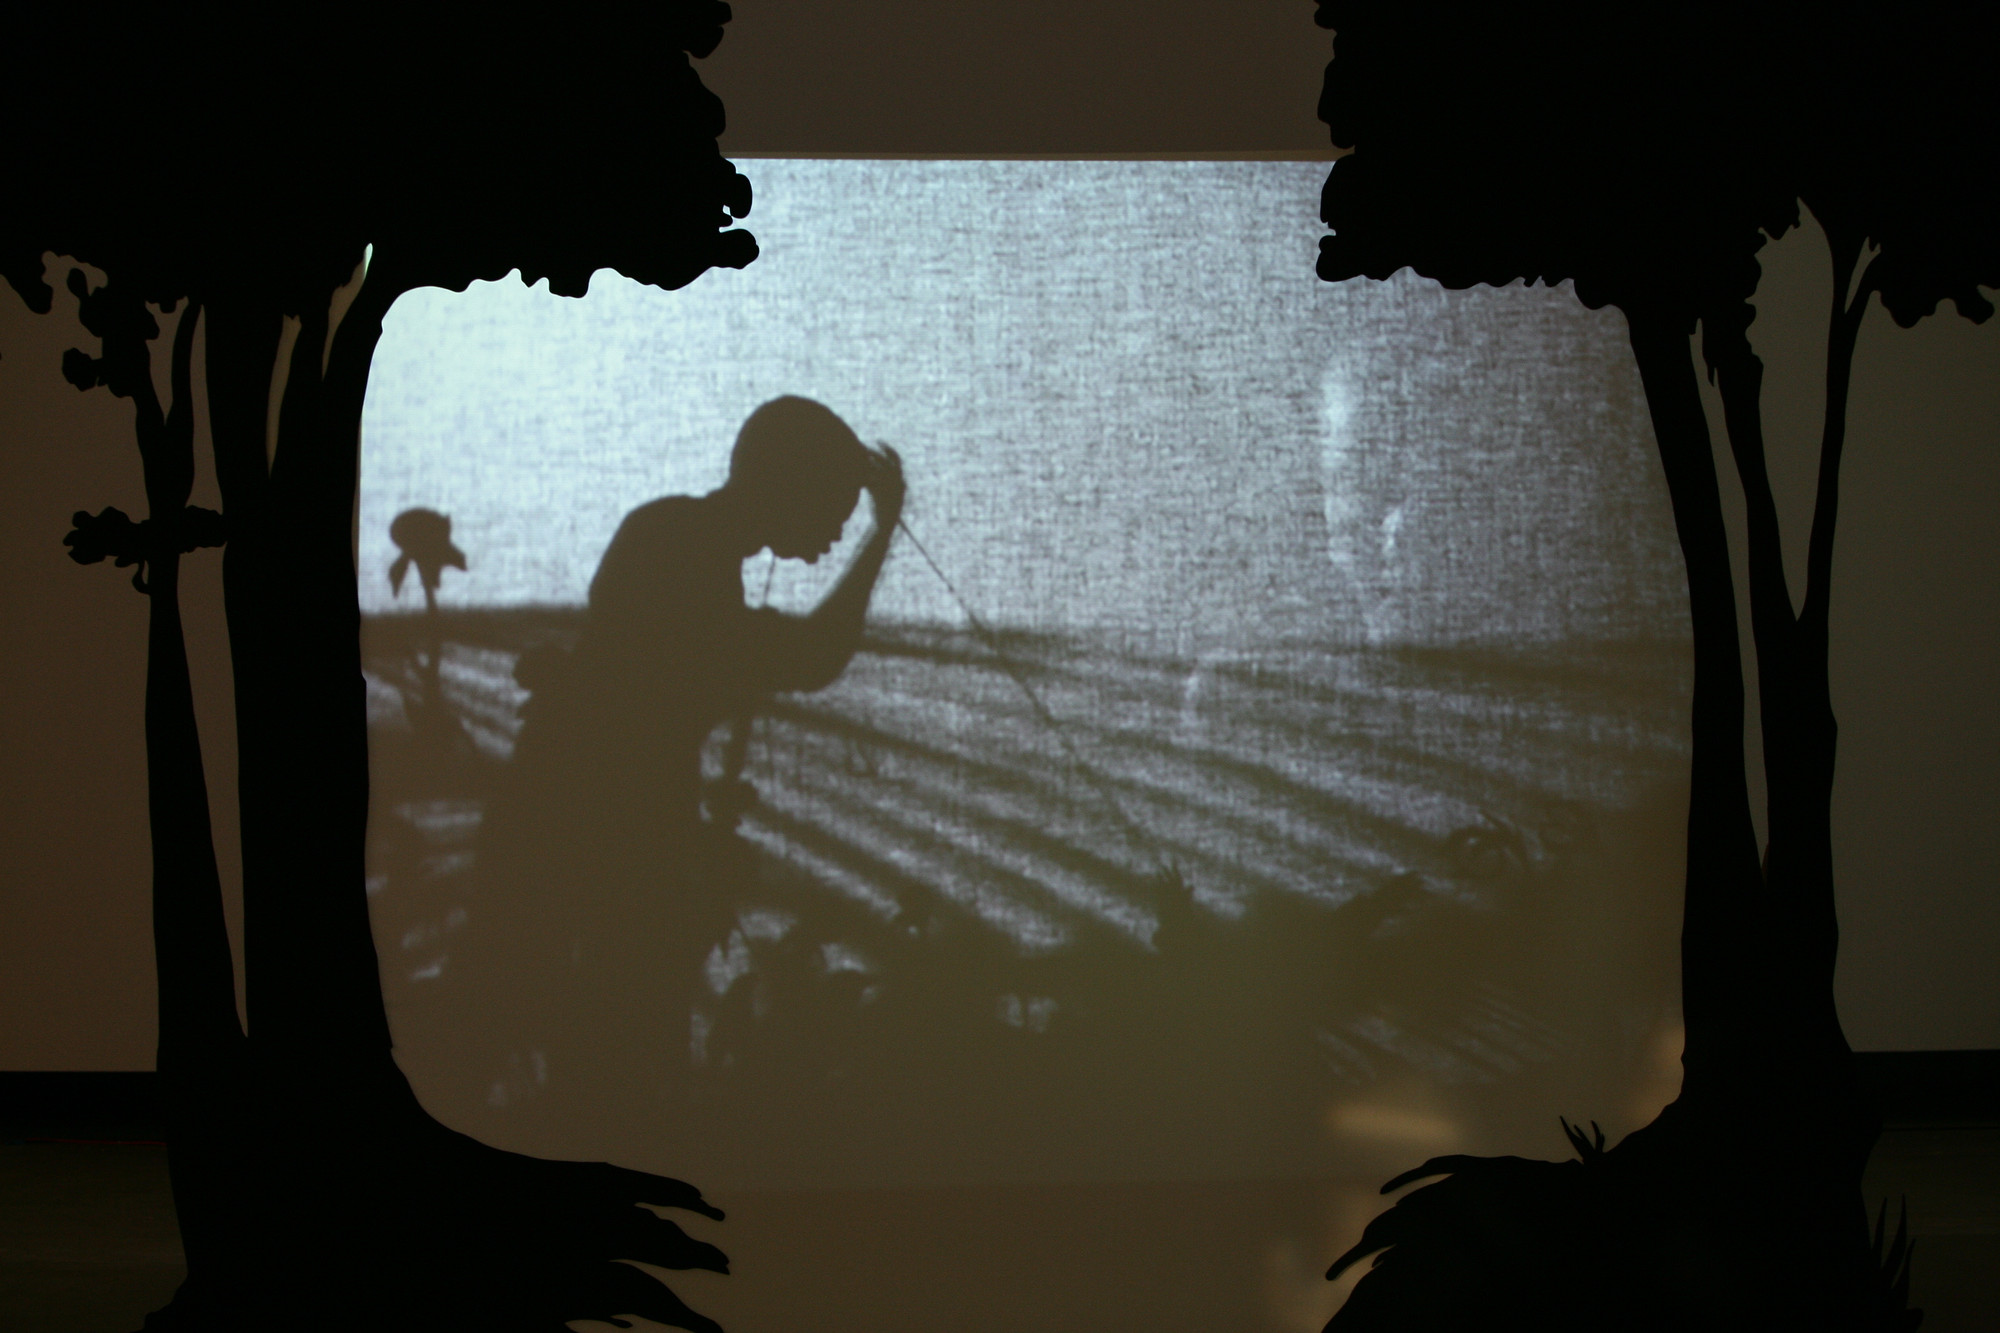 Kara Walker. 8 Possible Beginnings or: The Creation of African-America, a Moving Picture by Kara E. Walker. 2005